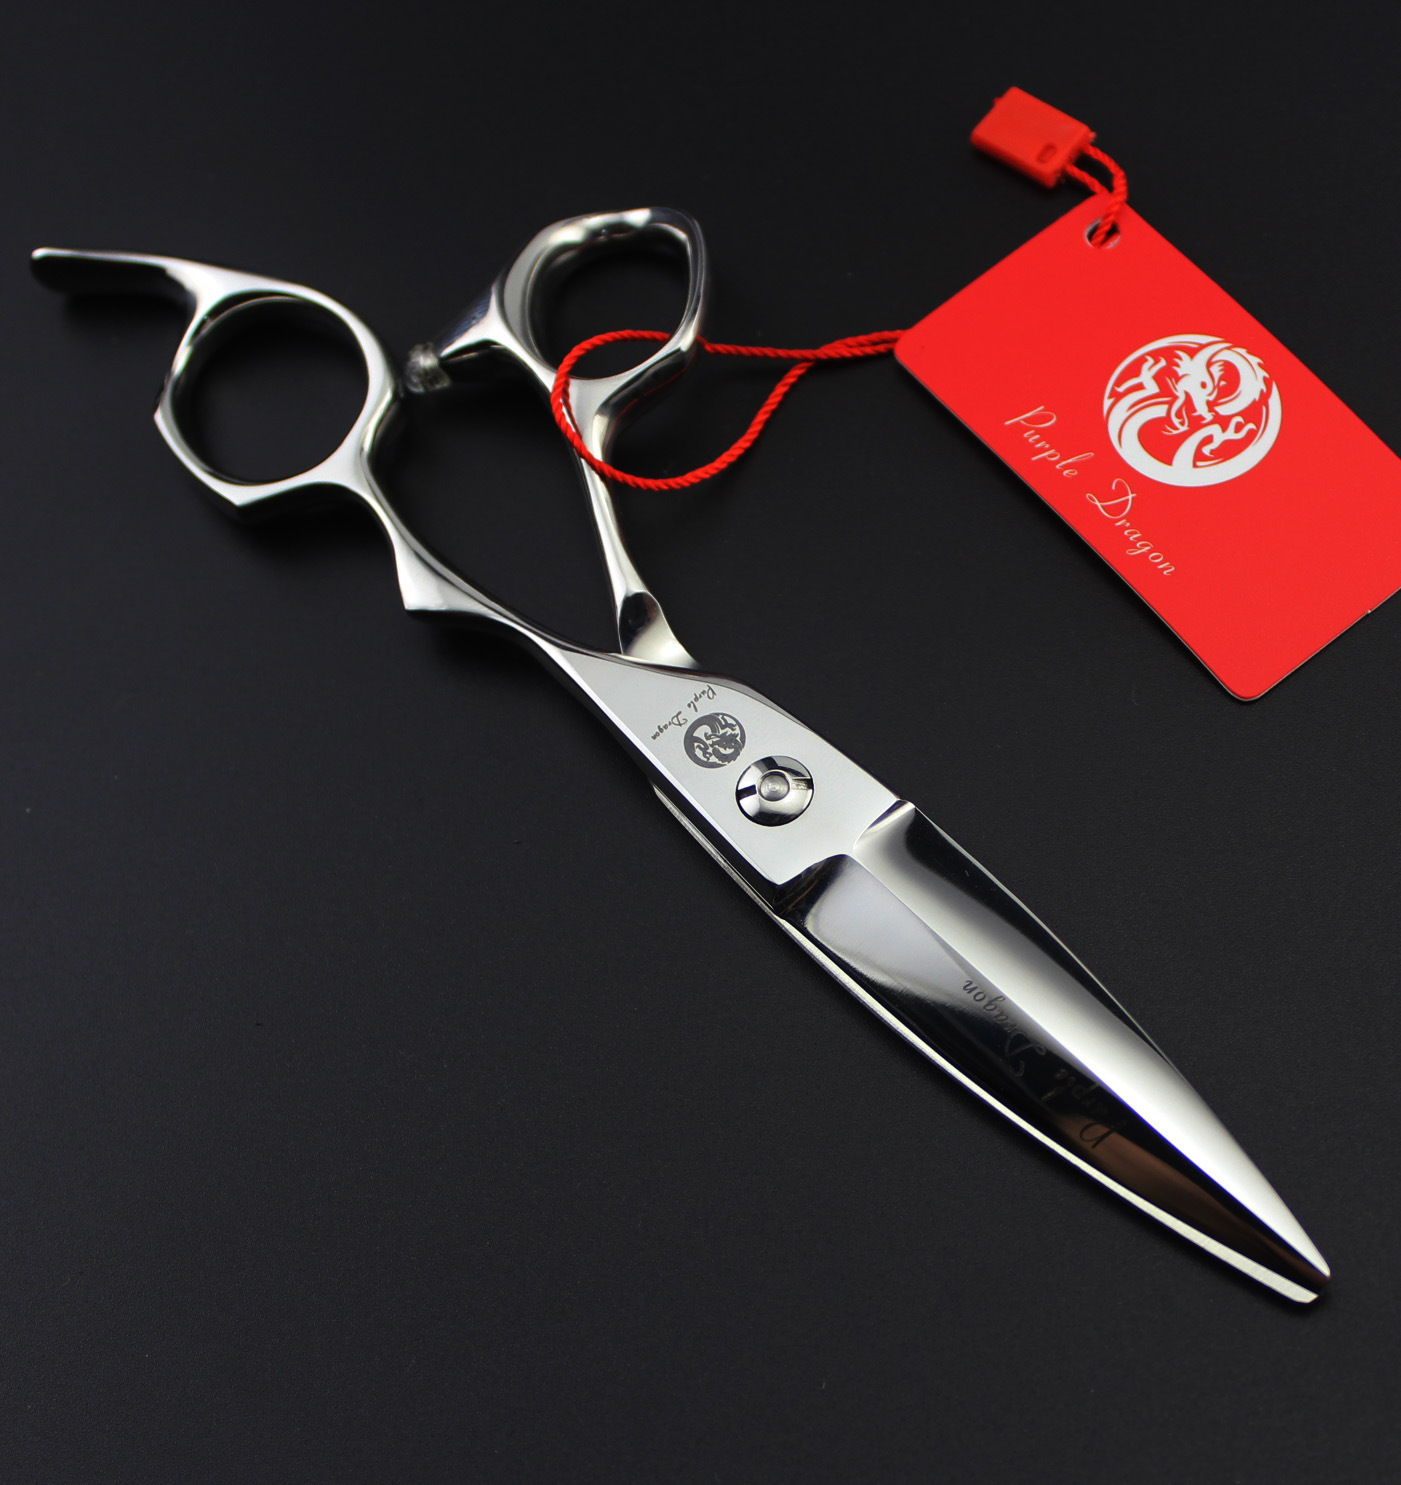 Professional 6.0 inch hair cutting modified large sliding lancet scissors<br>